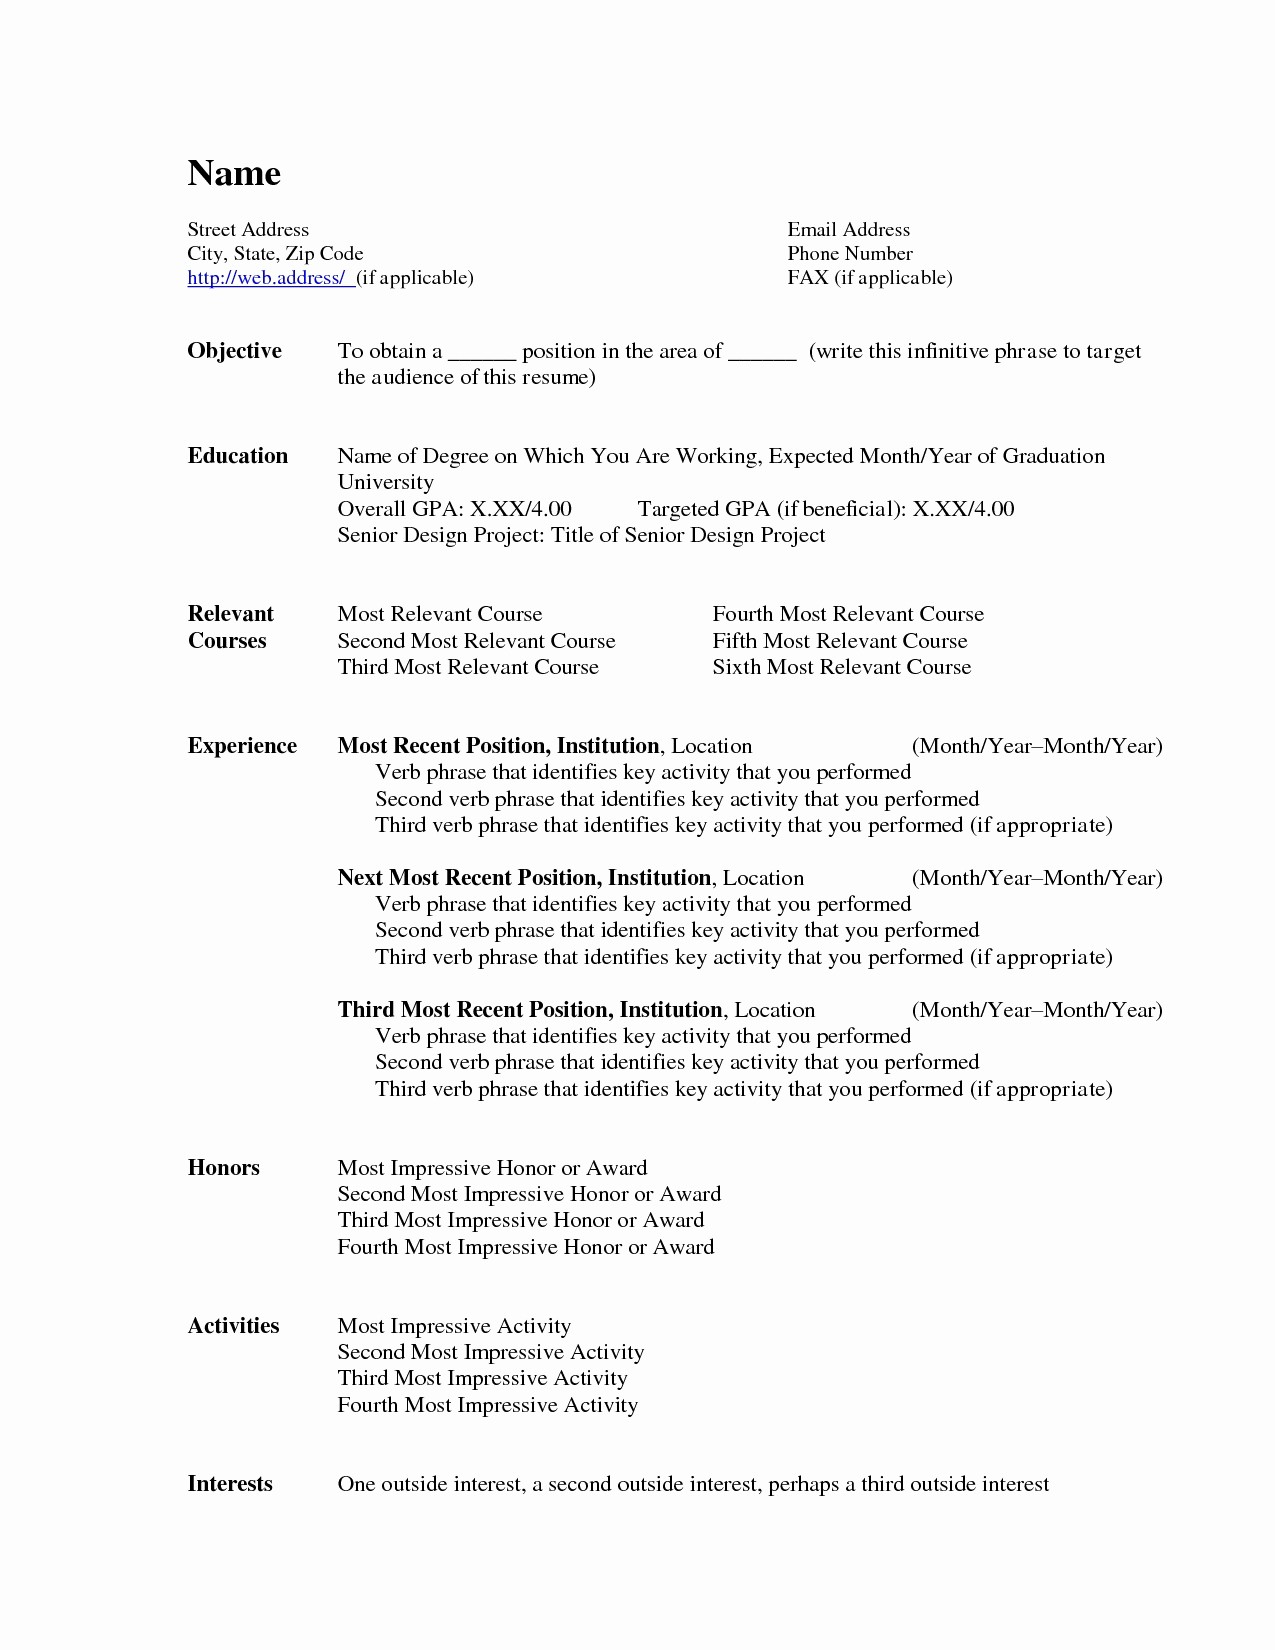 Ms Office Word Resume Templates Unique Microsoft Word Resume Templates Beepmunk